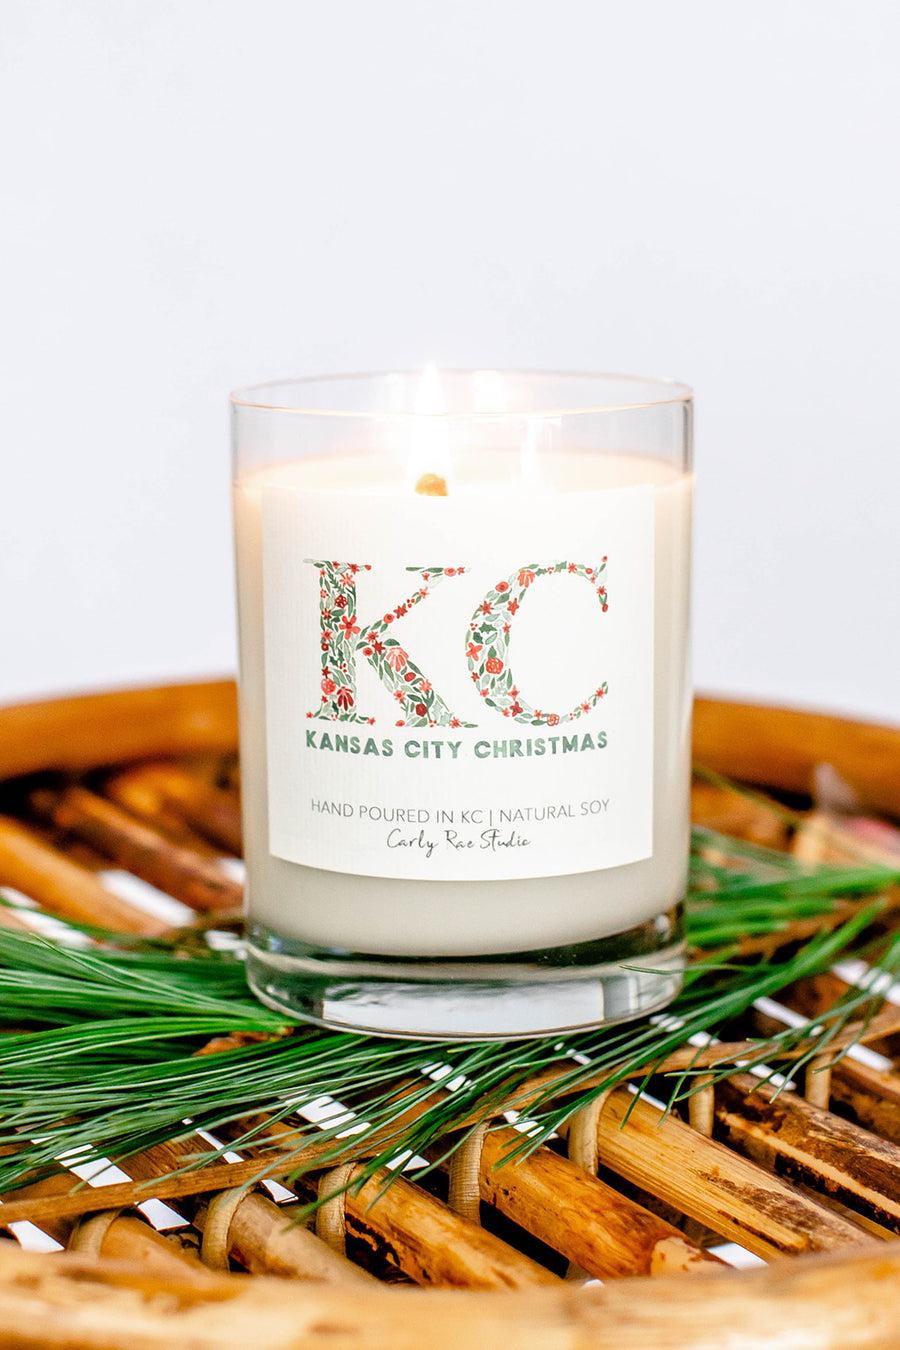 Kansas City Christmas Candle